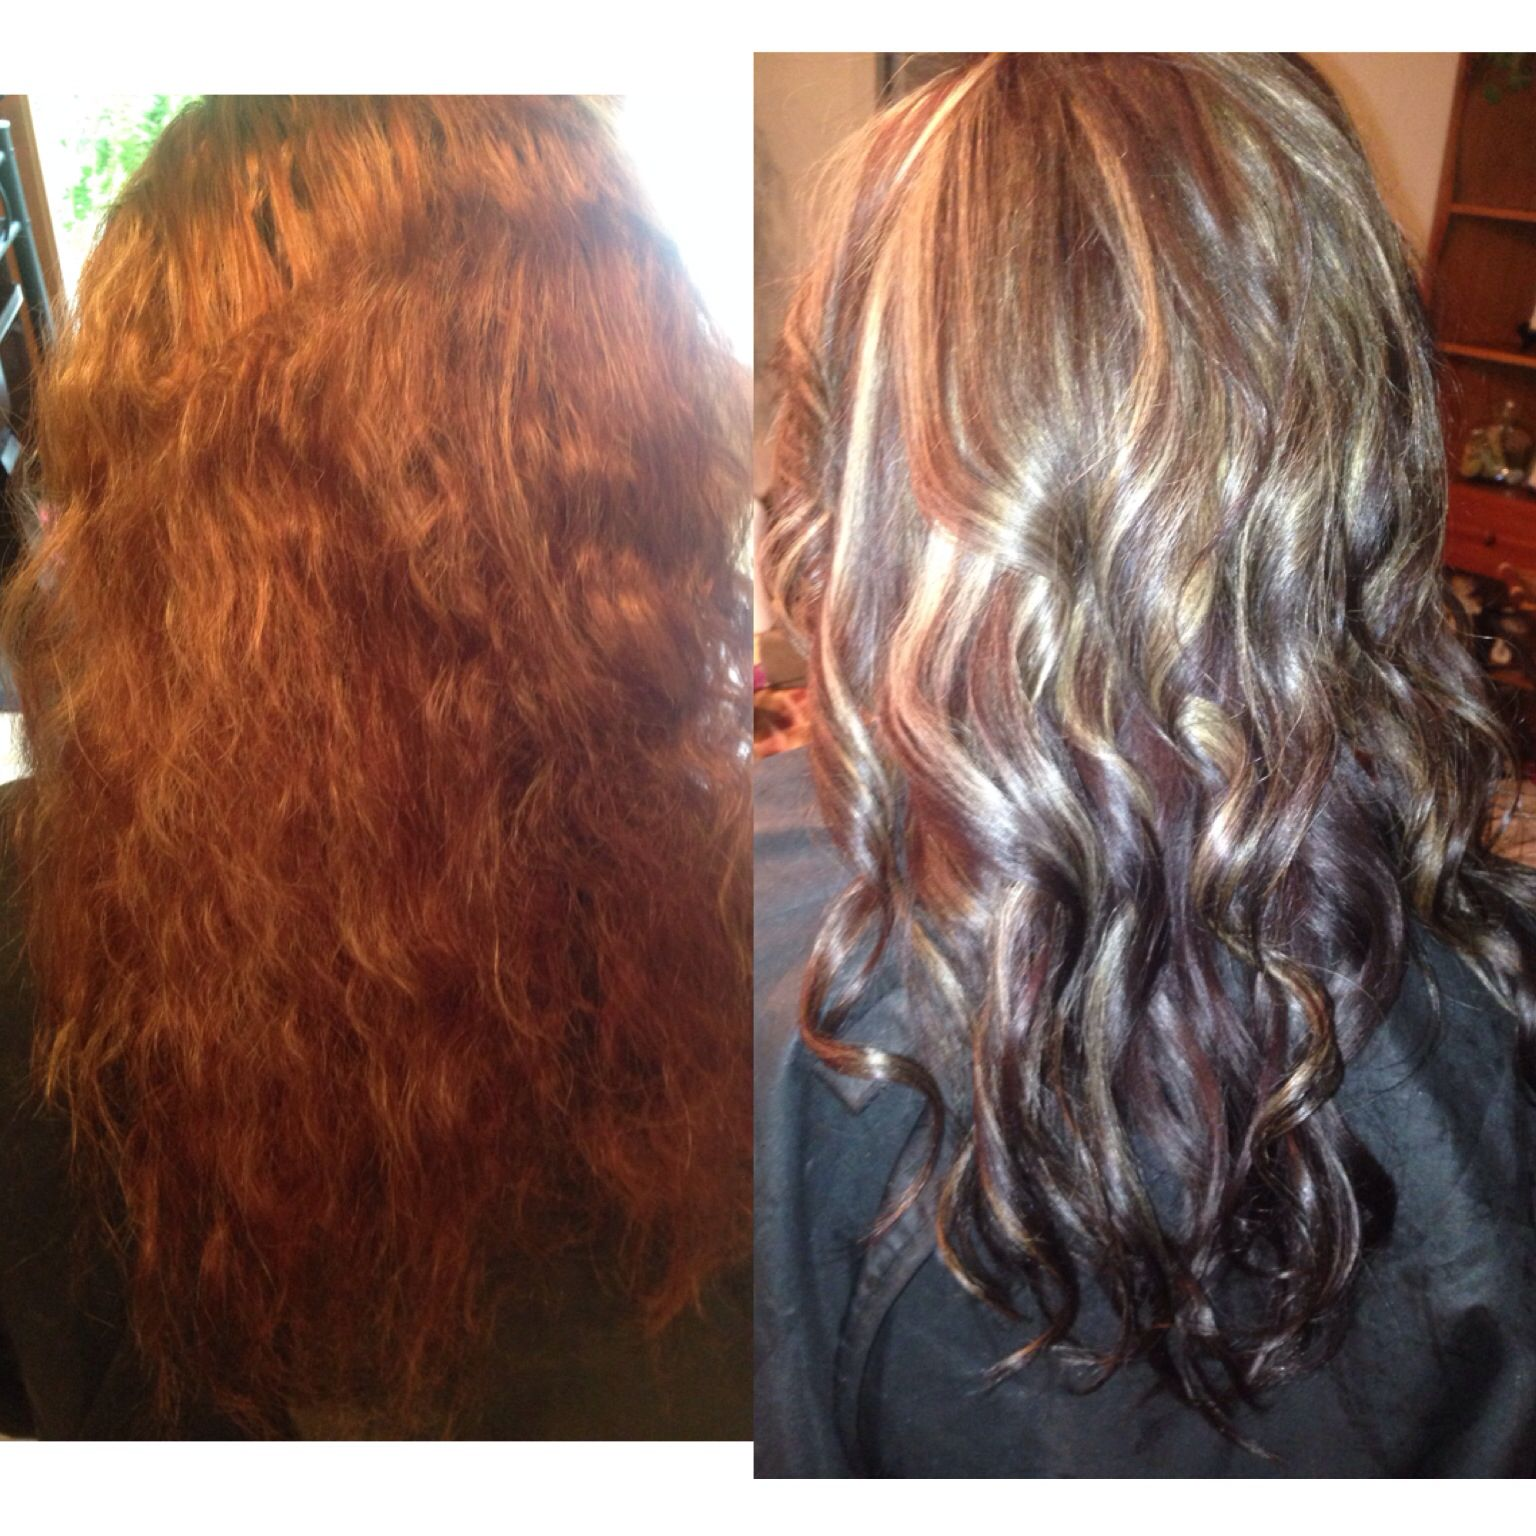 Before and after mocha and highlights hair hair hair by me